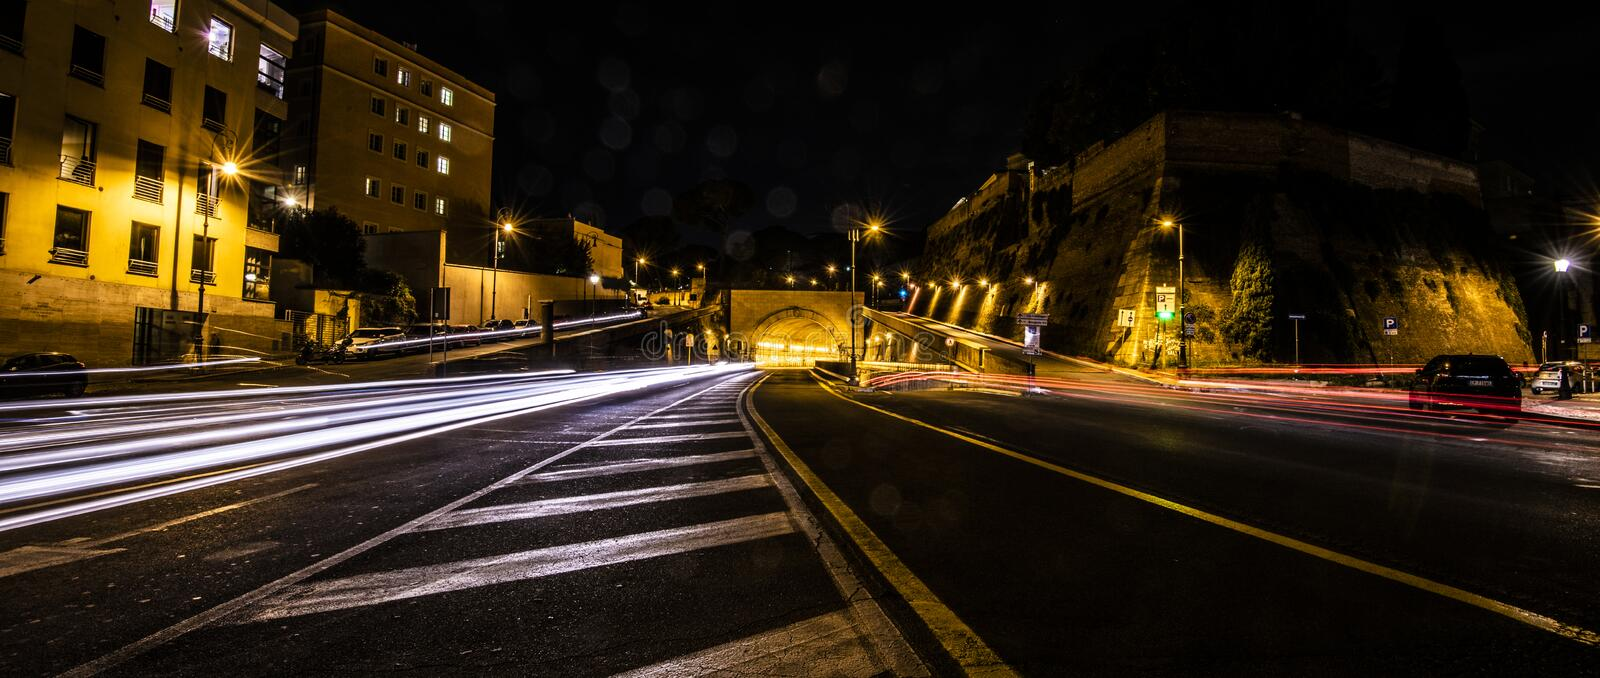 Light trails on street in Rome royalty free stock images